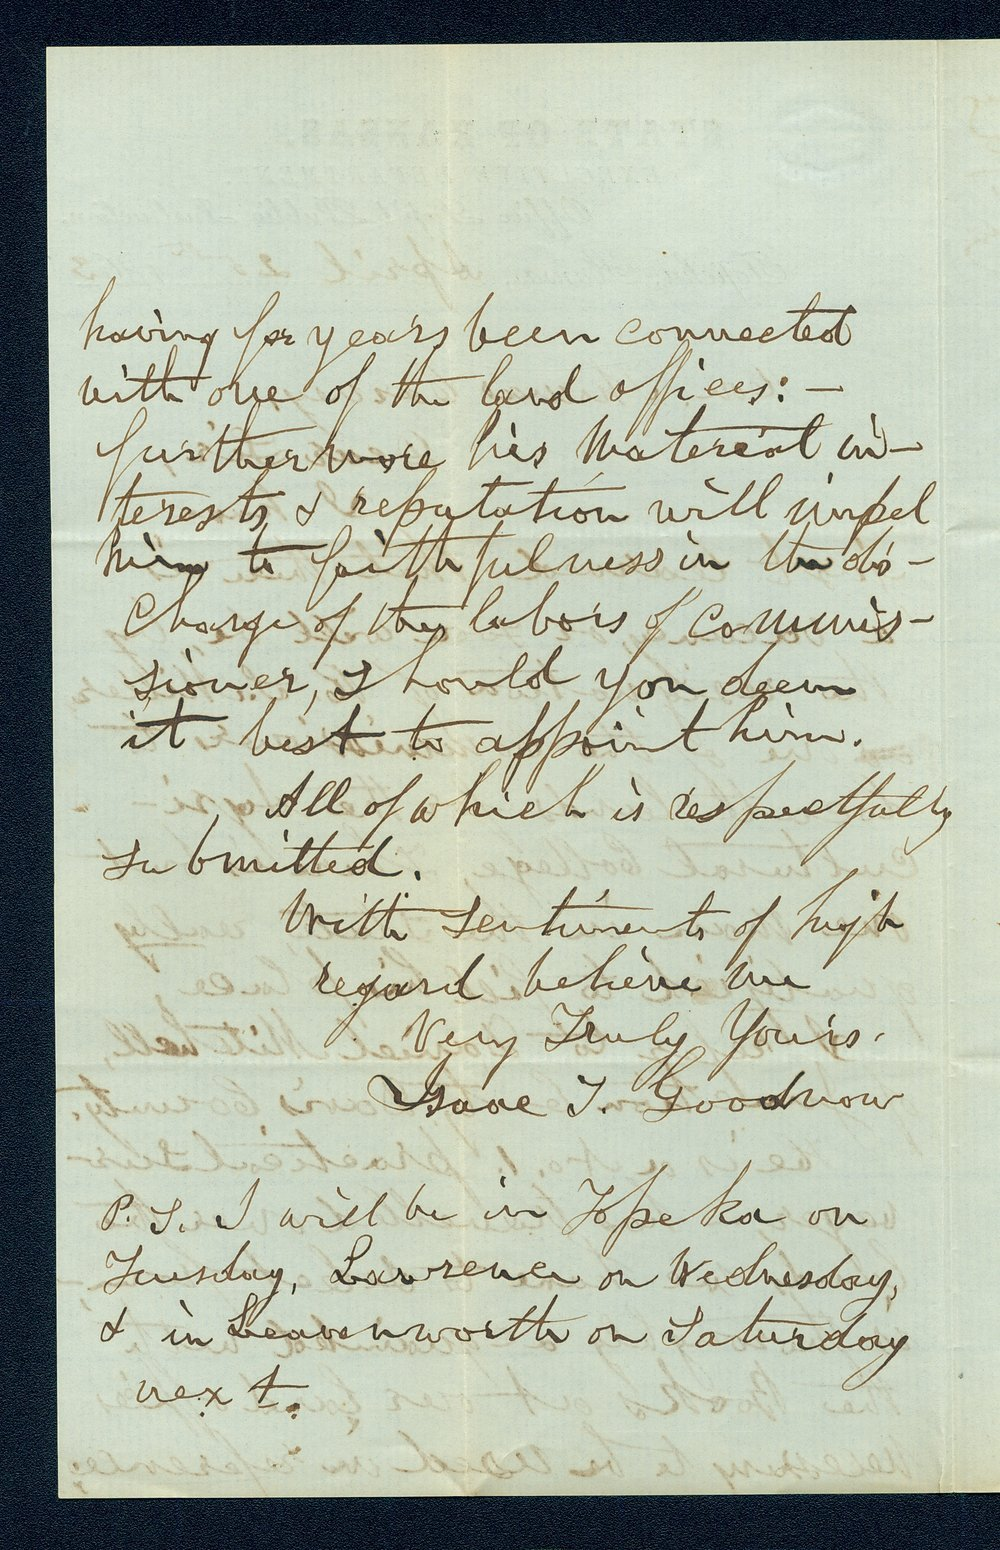 Governor Thomas Carney college and university lands, 1863, correspondence - 5